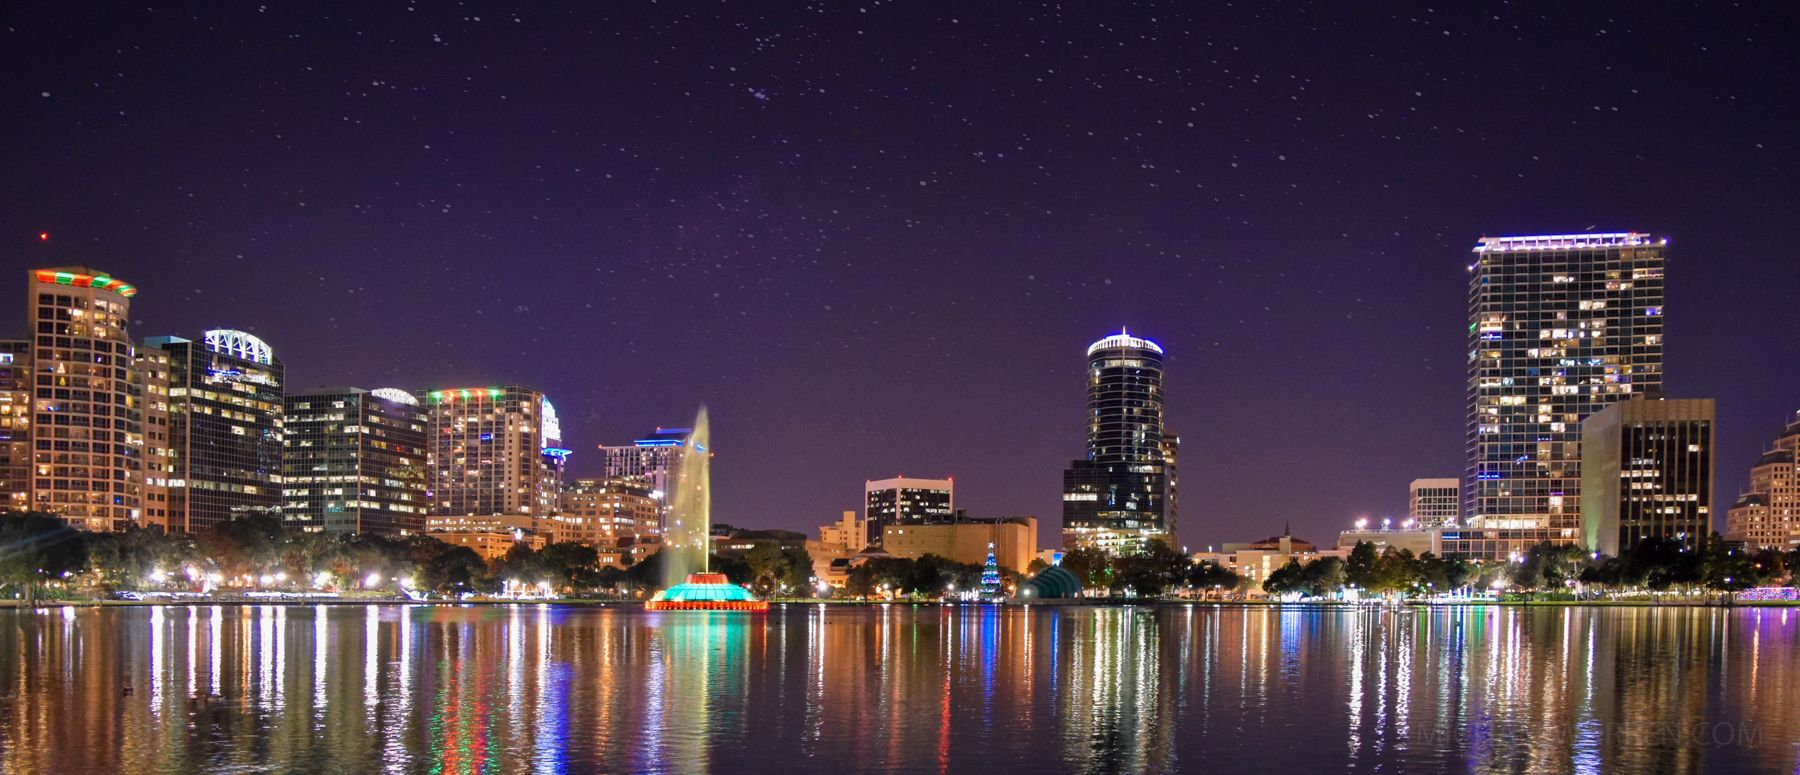 The relatively diminutive Orlando skyline tops only 441 feet with the 30-floor SunTrust Center. Together, the city has only 15 buildings in the city that top 230 feet. But this relatively small skyline is spectacular when viewed from Lake Eola Park. A mile-long walking path surrounds the lake, with views of the skyline, the colorful fountain, and a flock of swans. Photo: Michael Warren / iStock